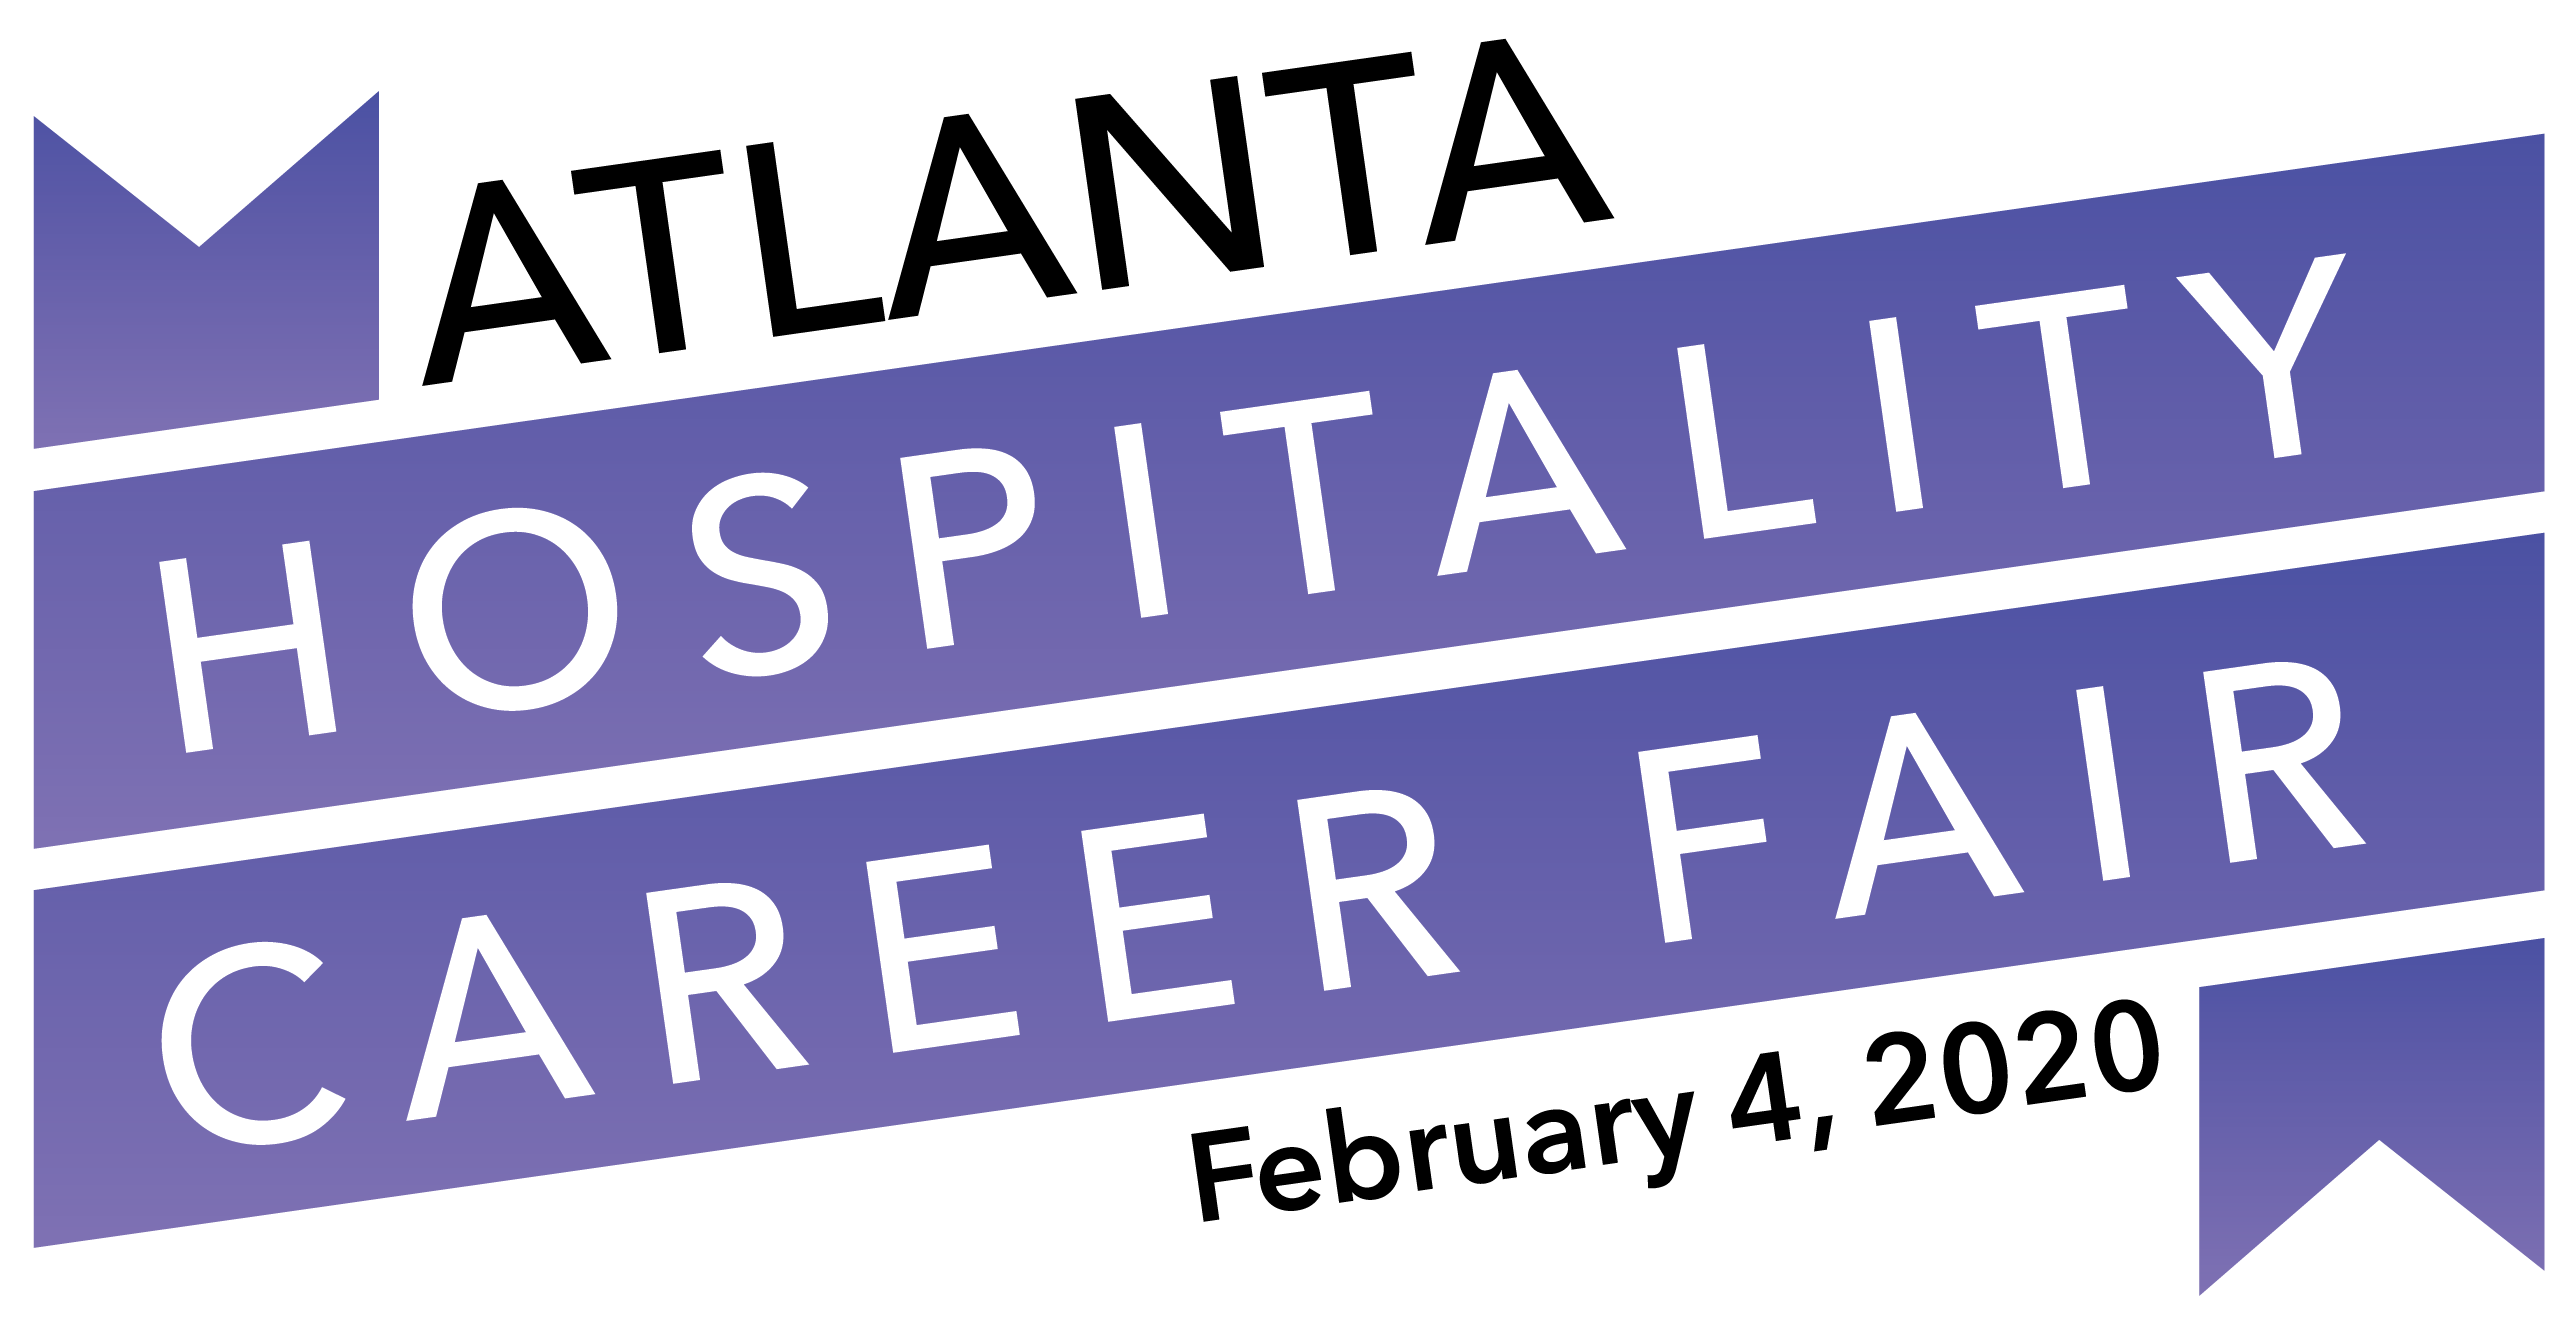 Atlanta Hospitality Career Fair